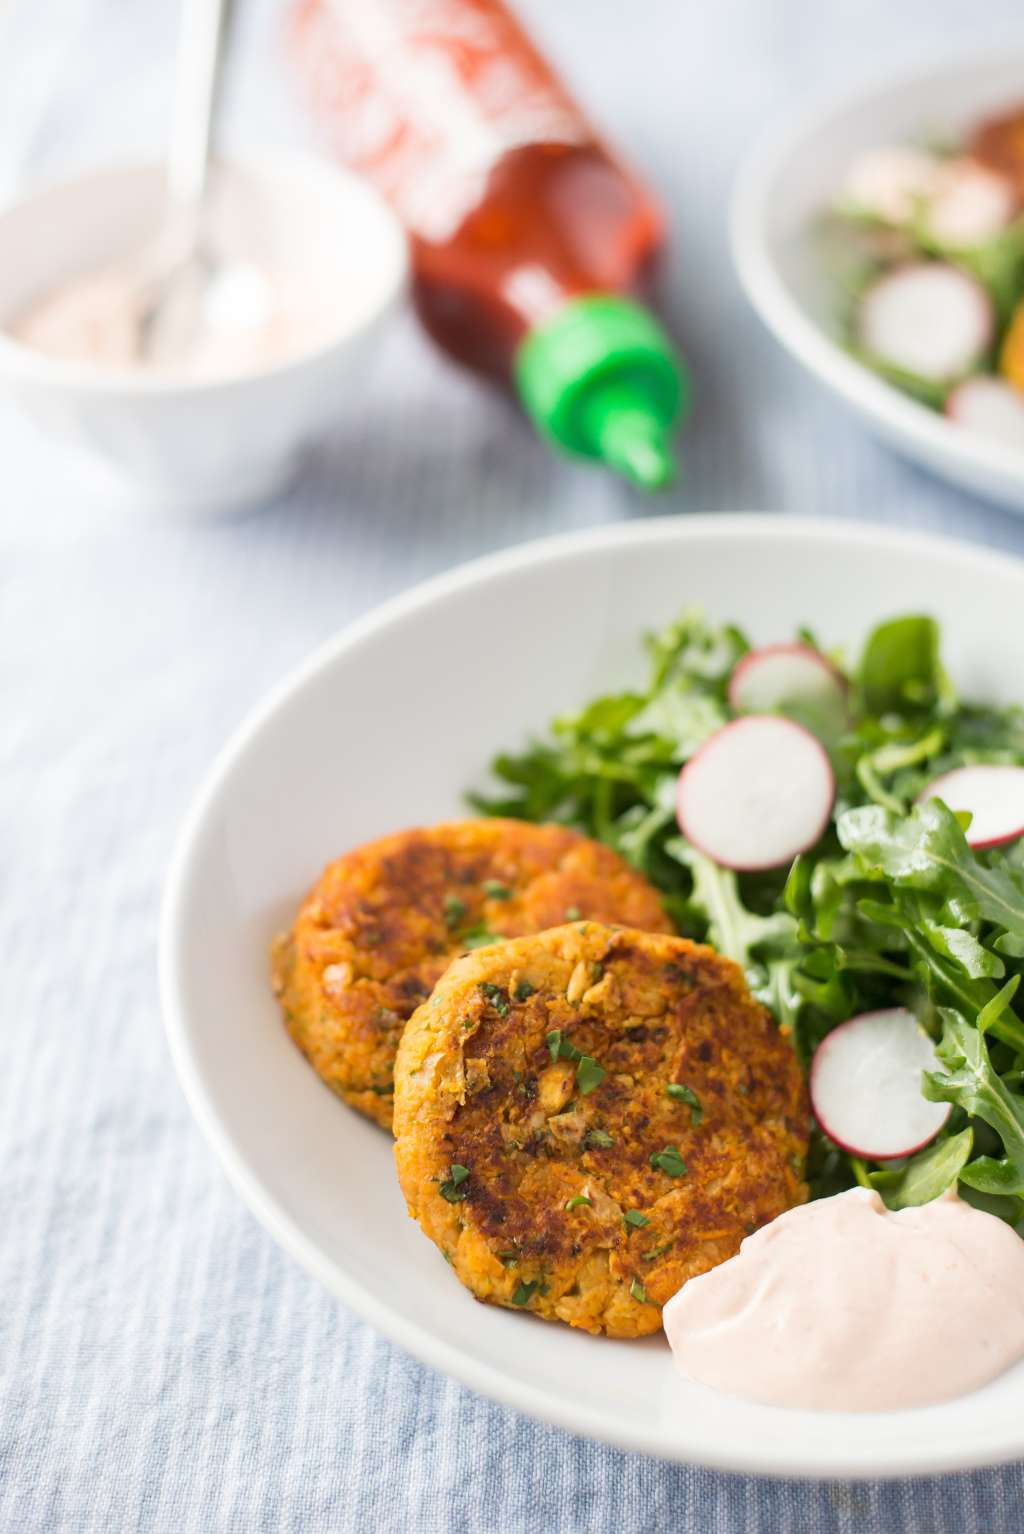 These Sweet Potato-Chickpea Fritters Make Lunch Exciting